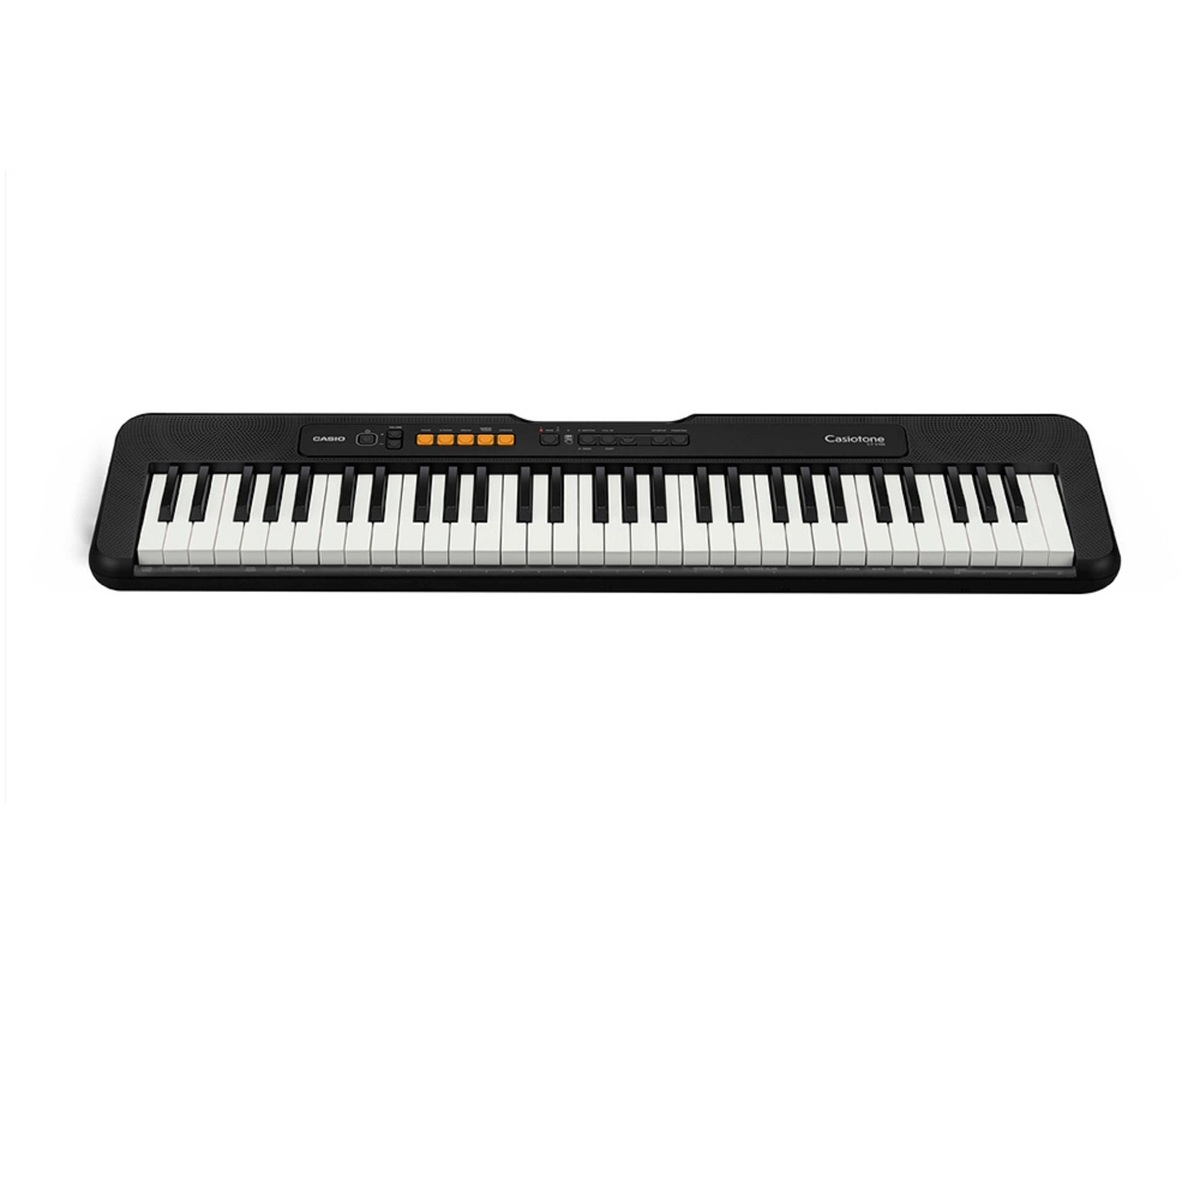 Casio CTS100 Portable Keyboard with 61 Keys